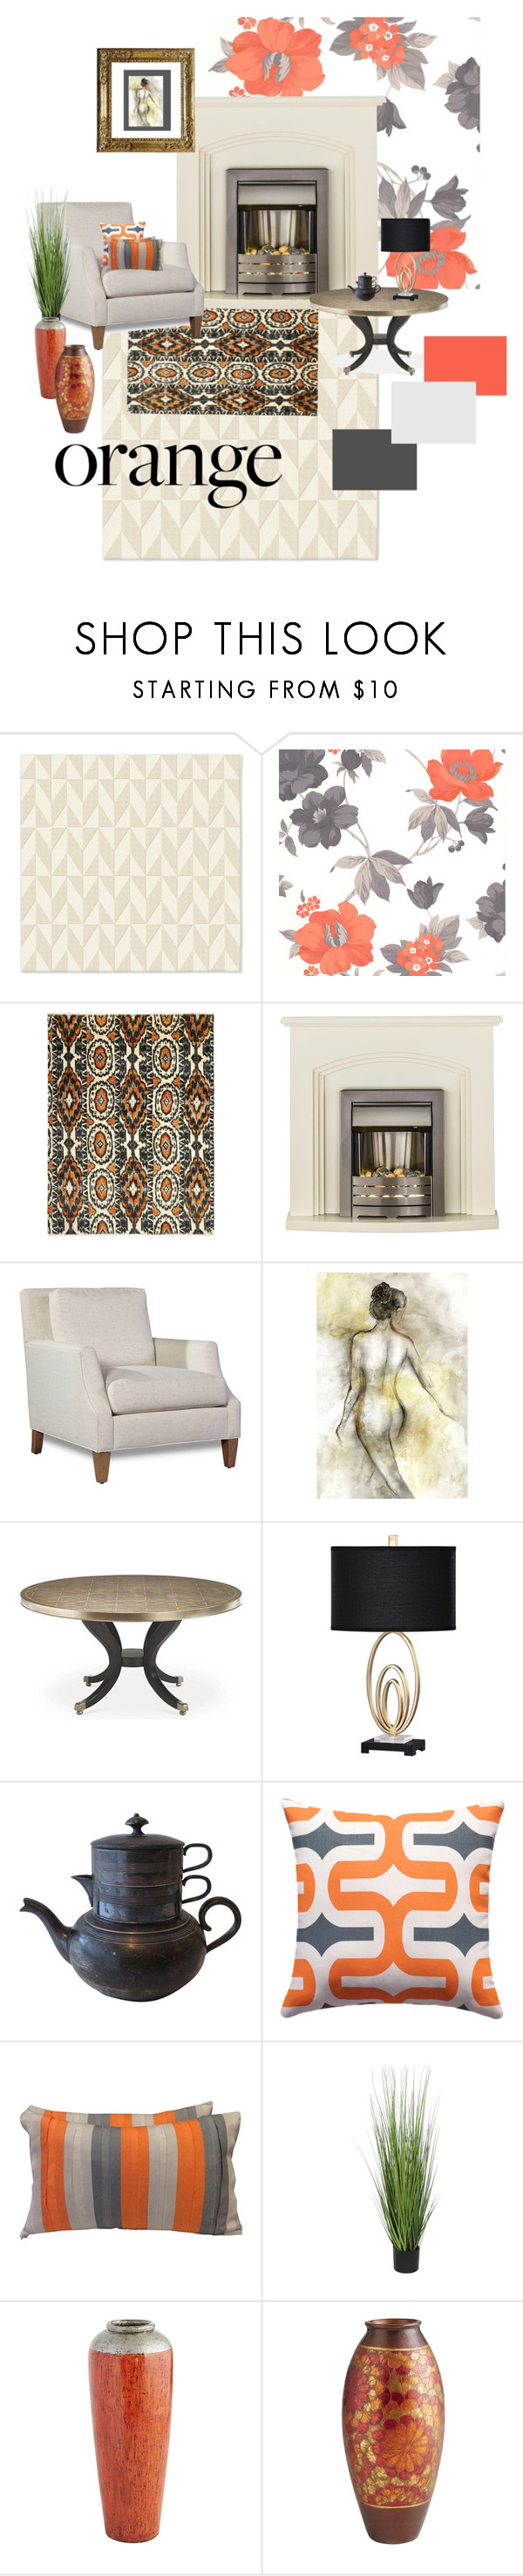 """""""Orange Accents in Traditional Decor"""" by pheinart ❤ liked on Polyvore featuring interior, interiors, interior design, home, home decor, interior decorating, West Elm, Graham & Brown, Safavieh and Leftbank Art"""